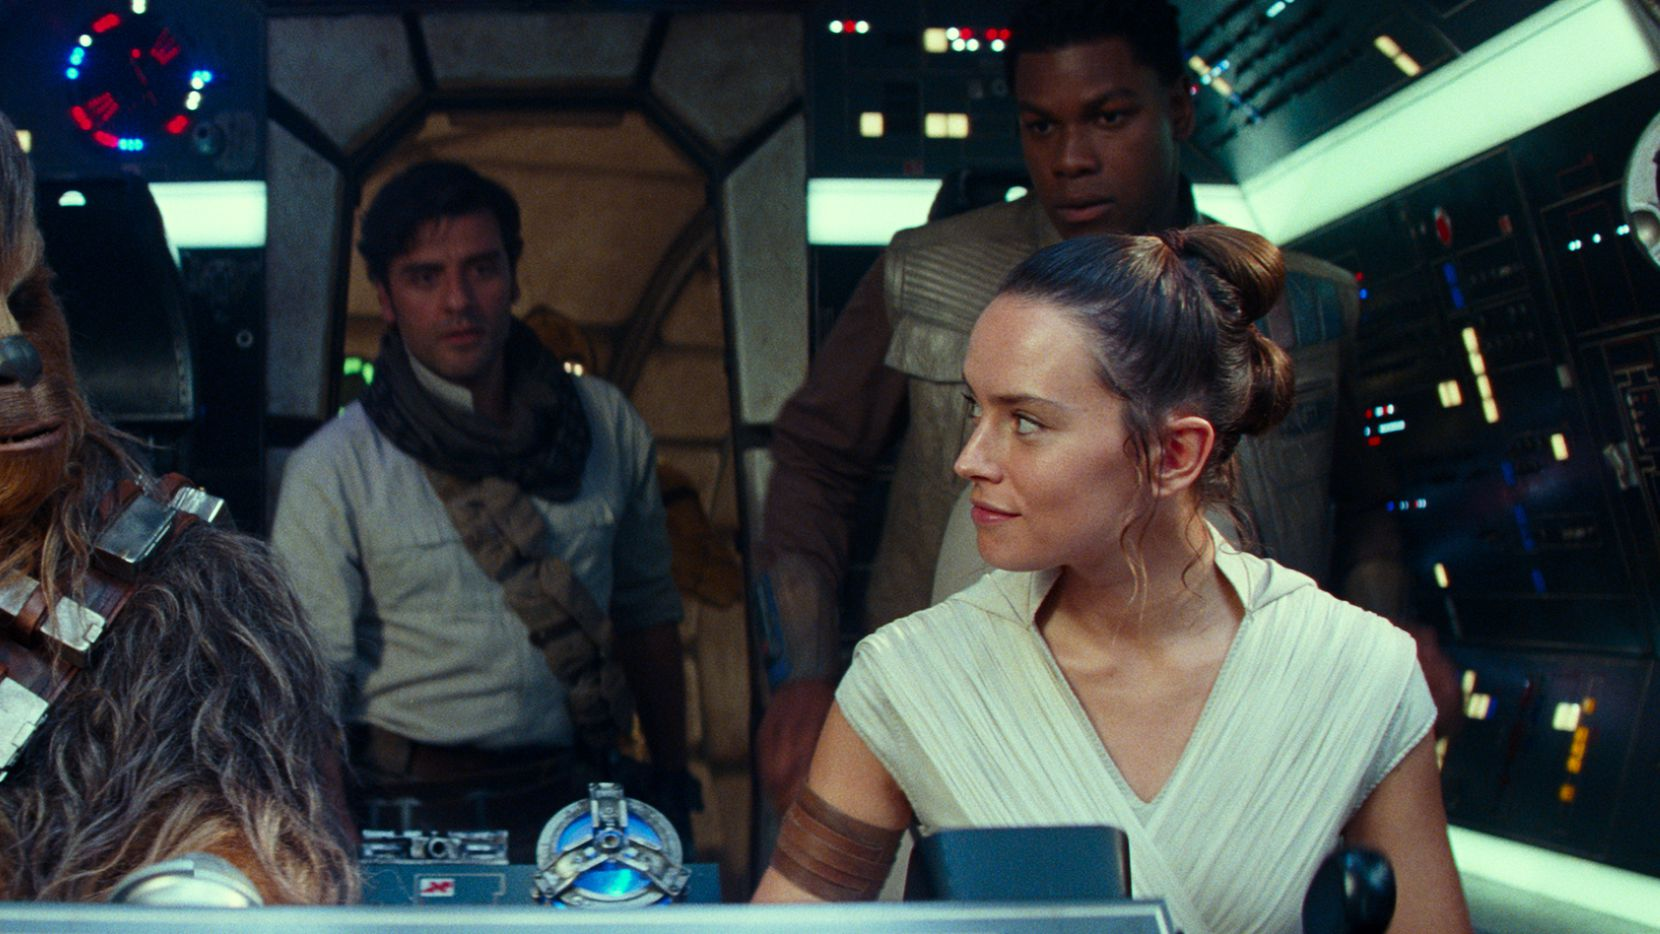 """The Star Wars series began in 1977 and continues into the 21st century with this scene from """"Star Wars"""" The Rise of Skywalker"""", starring (from left) Joonas Suotamo as Chewbacca, Oscar Isaac as Poe Dameron, Daisy Ridley as Rey and John Boyega as Finn."""